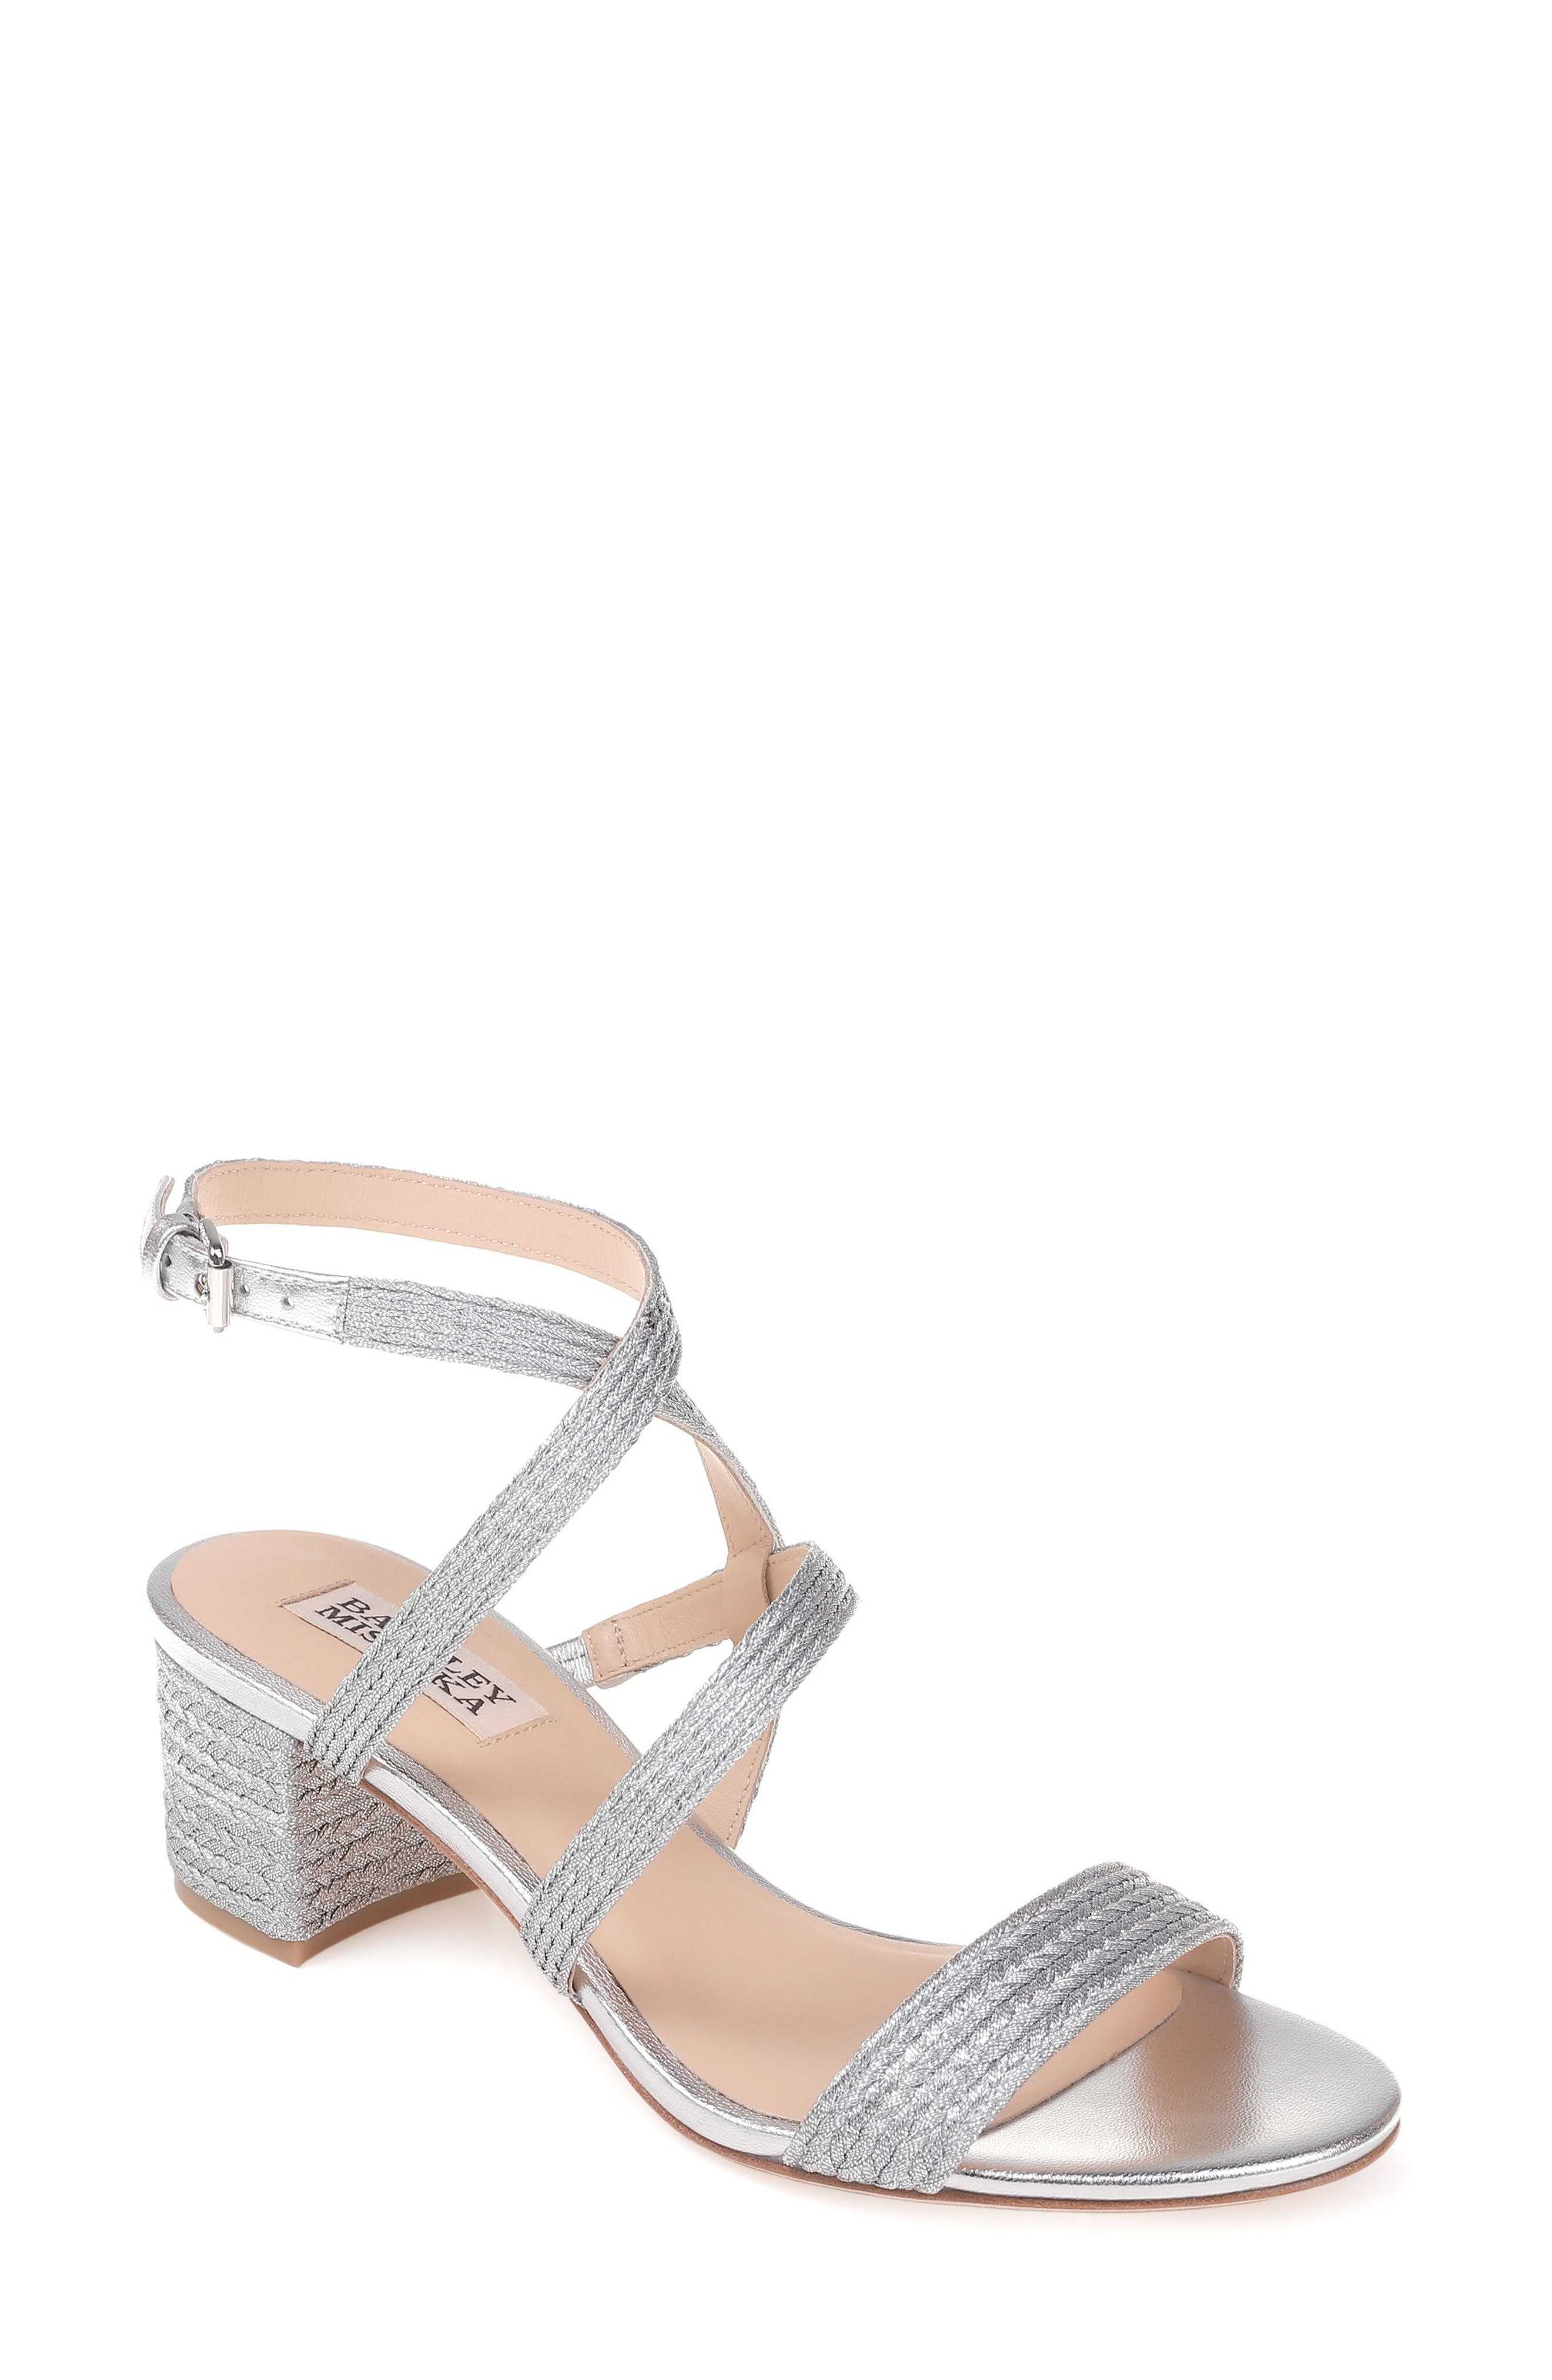 Main Image - Badgley Mischka Storm Block Heel Sandal (Women)